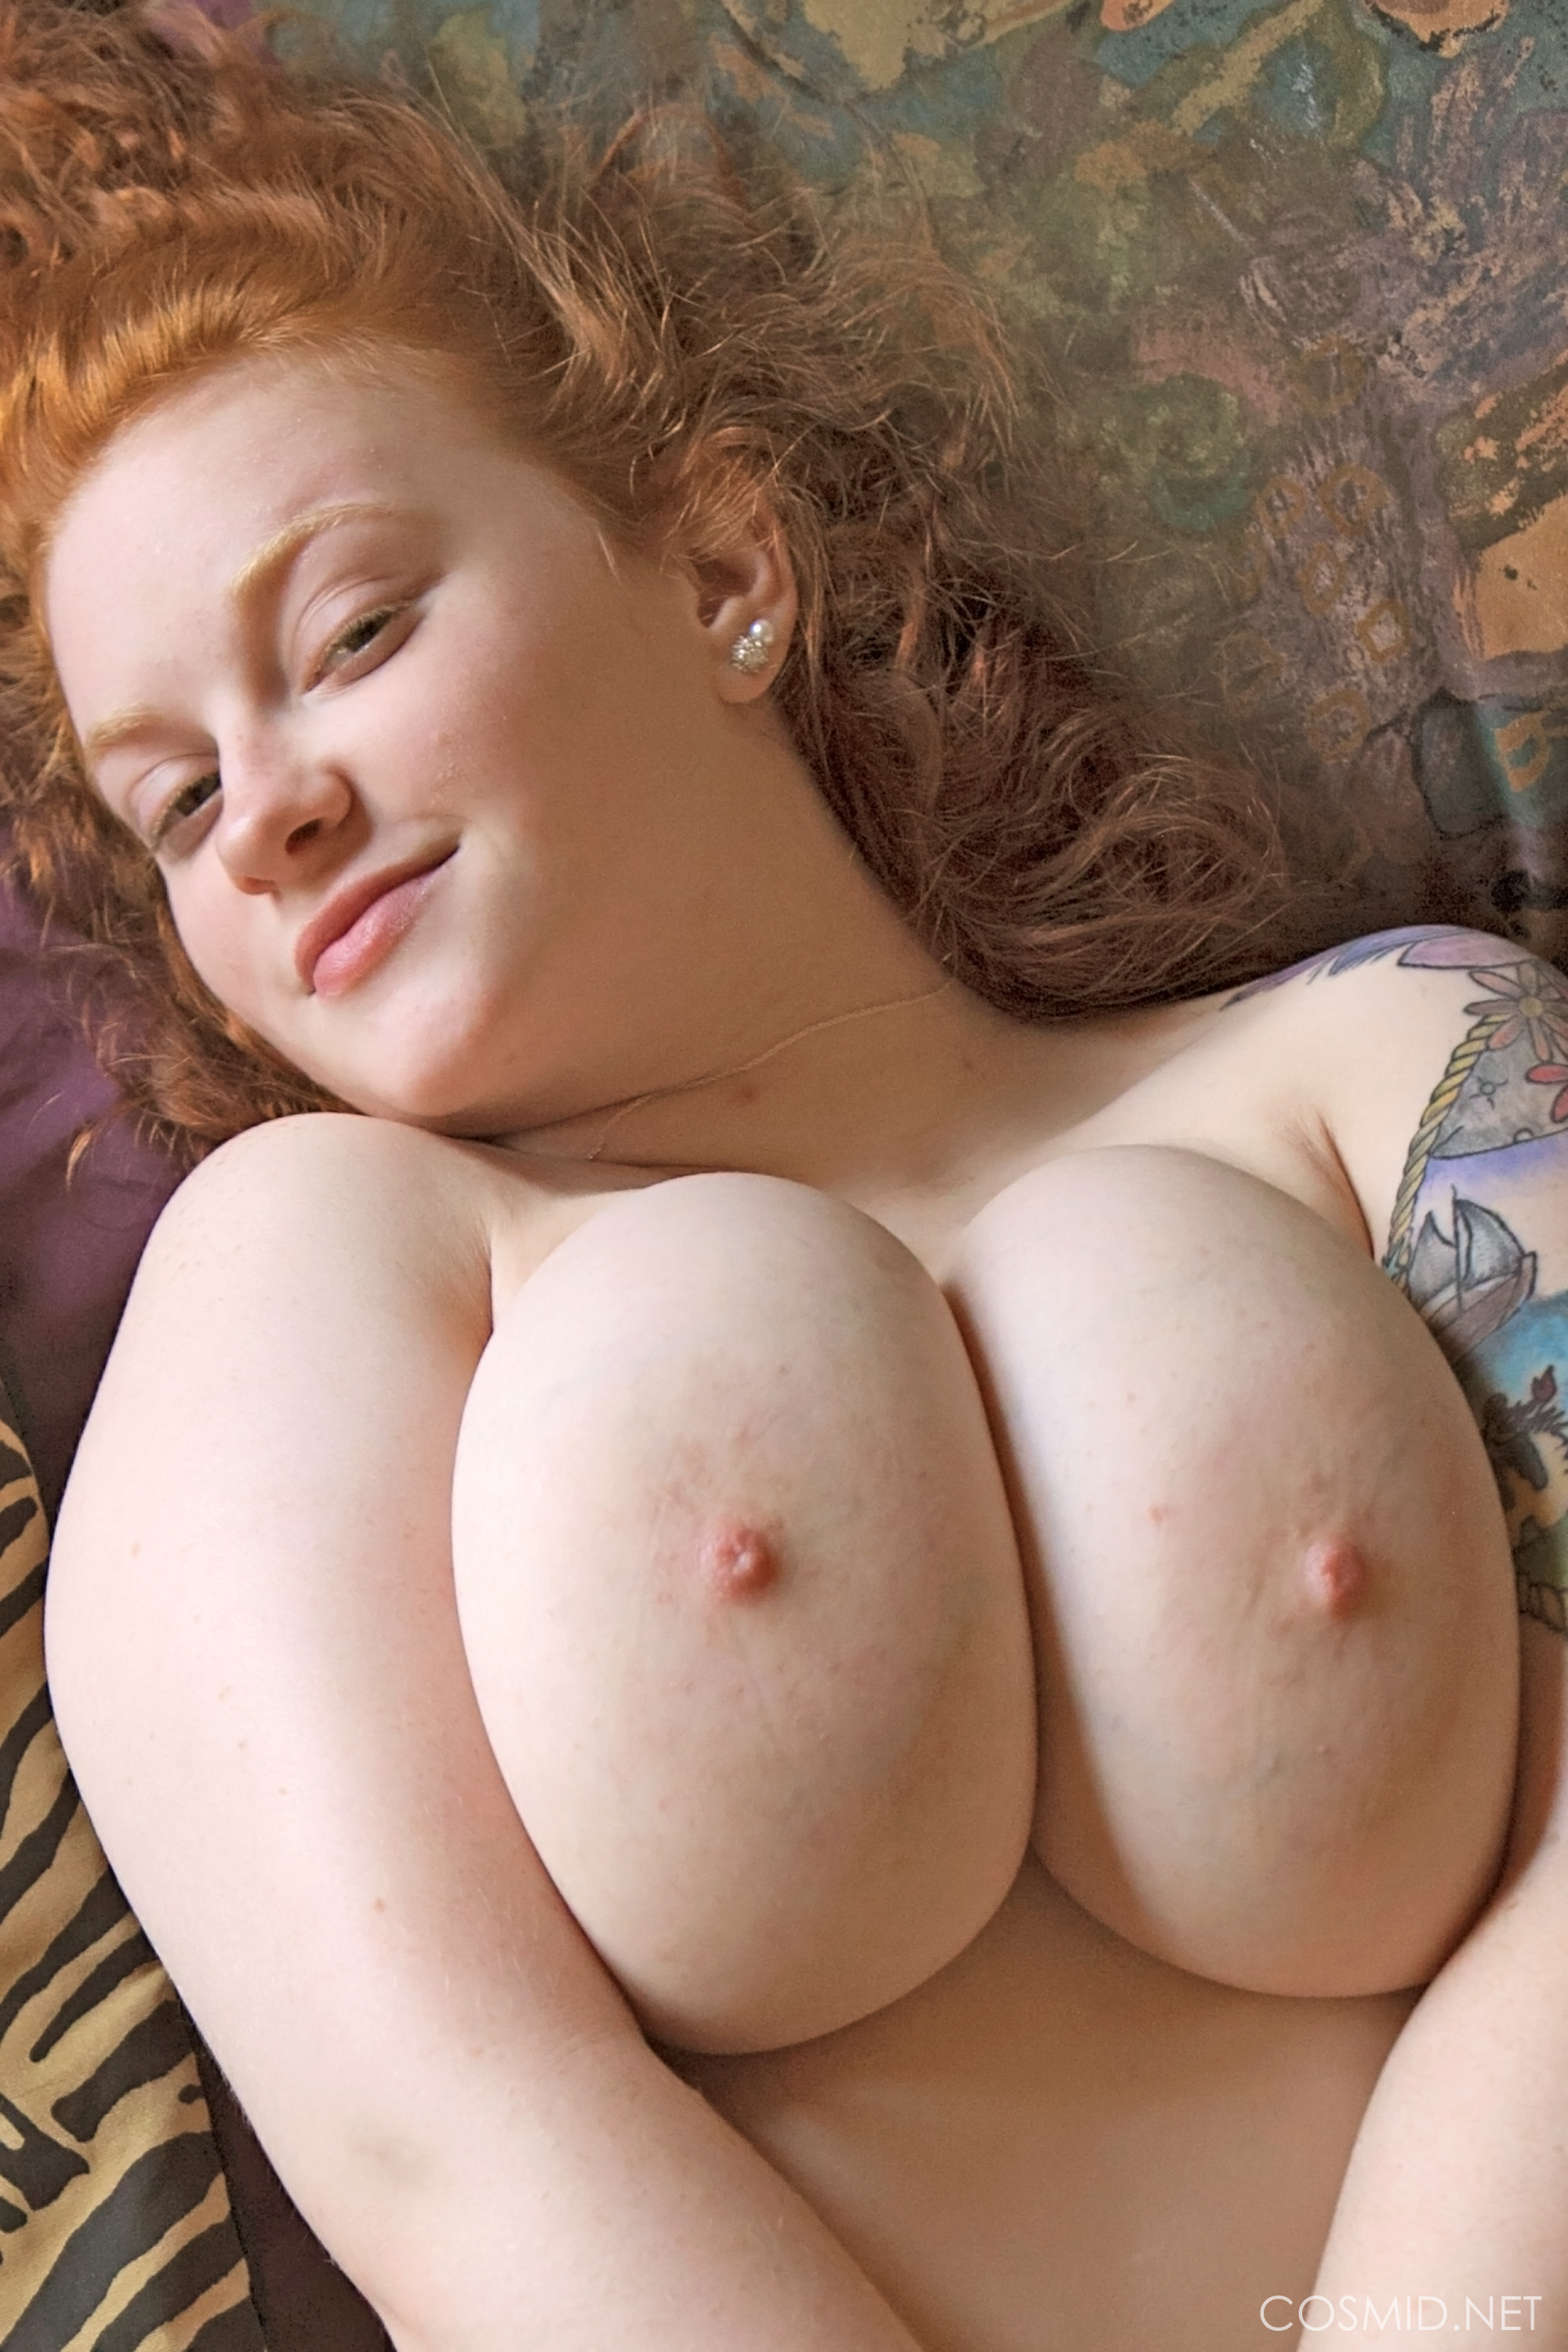 Nude girl chubby tattooed